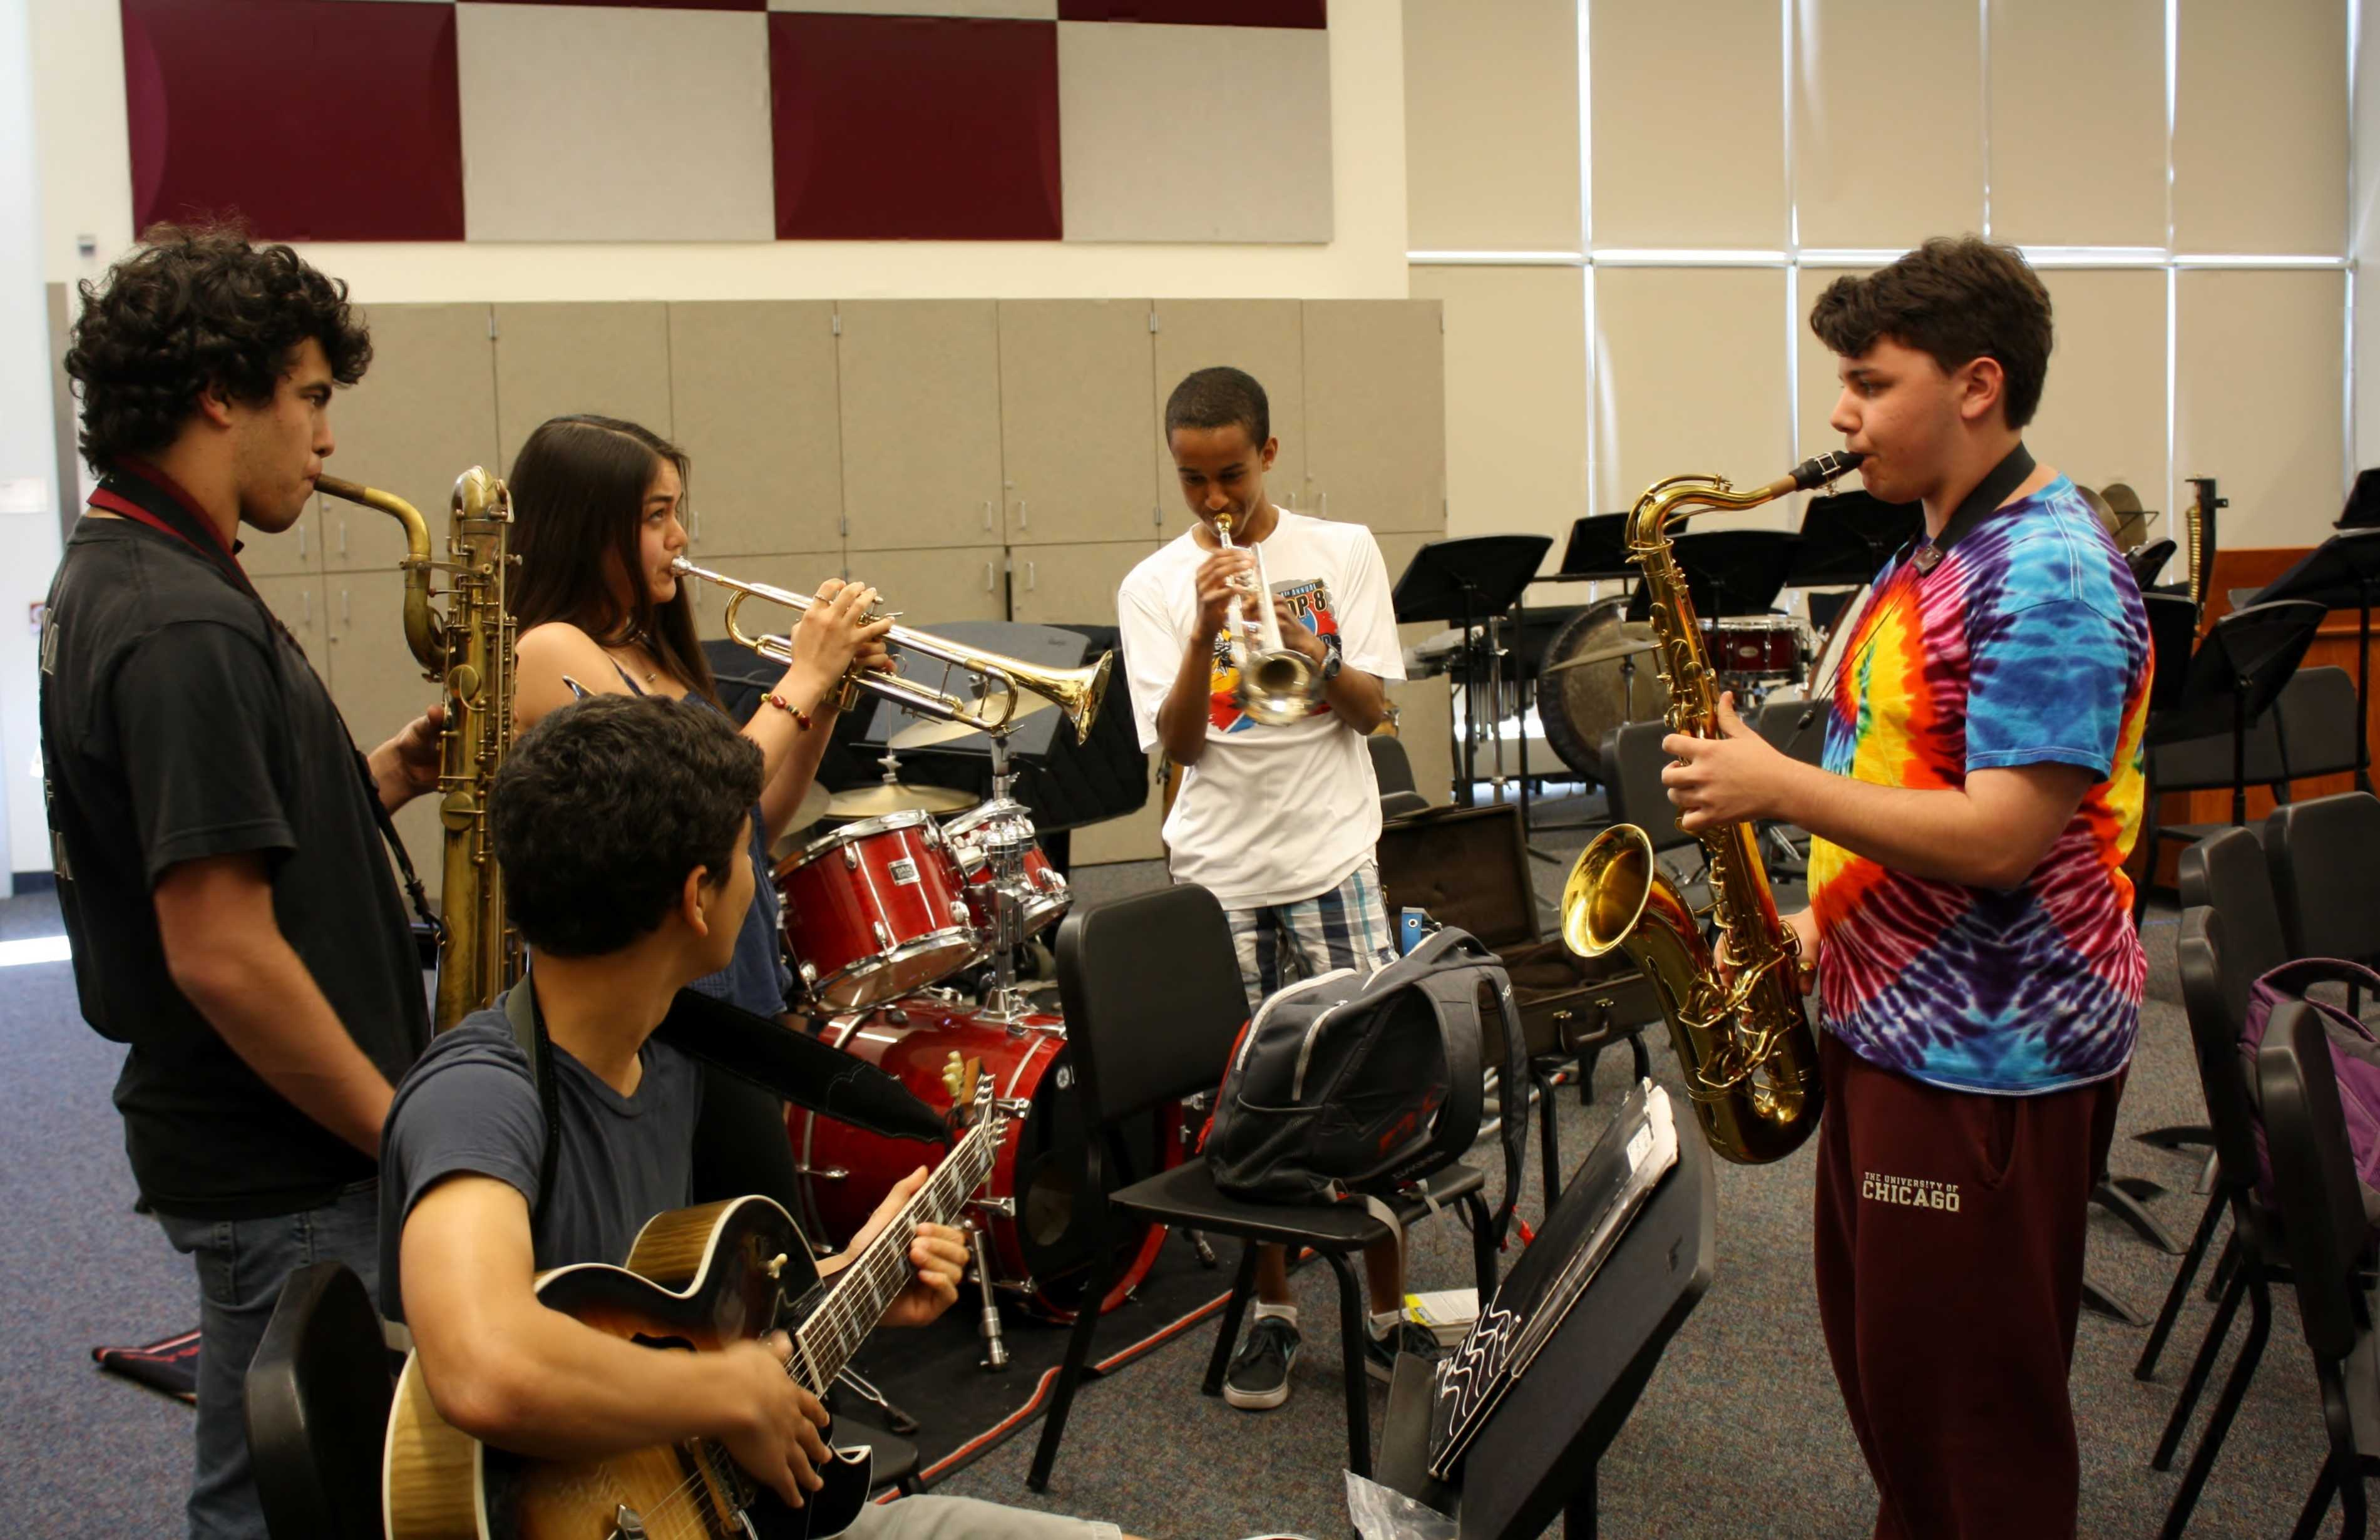 Jazz Ensemble members swap instruments and jam together after class.